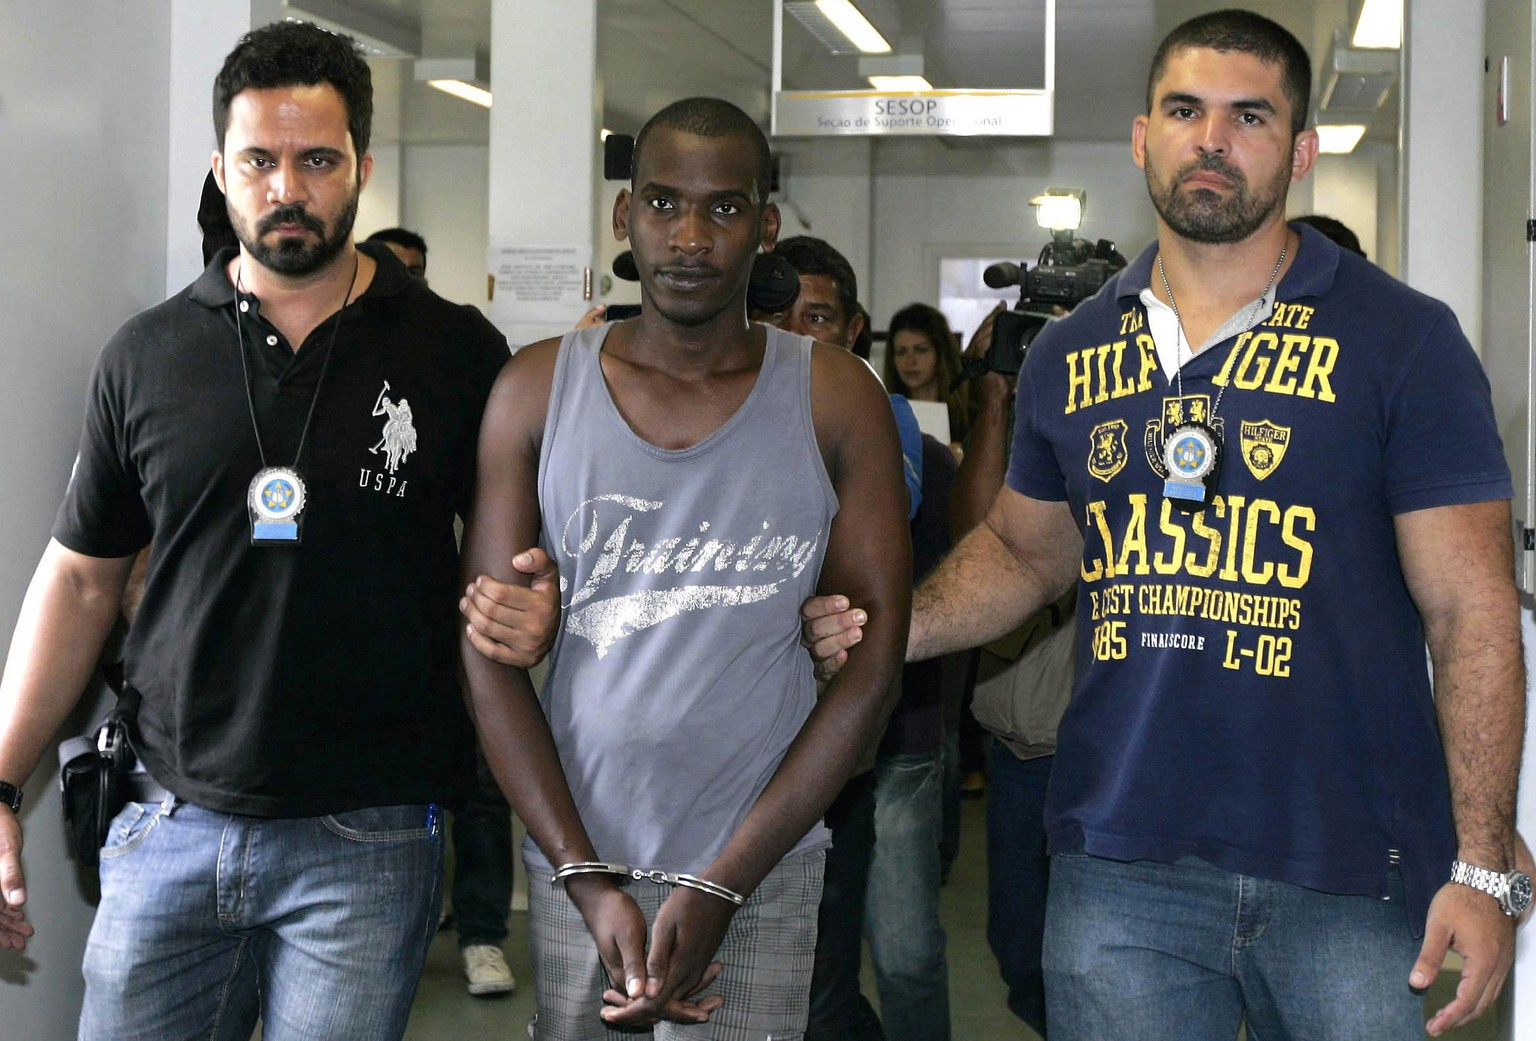 Sailson Jose das Gracas, 26, is escorted by policemen at a police station in Nova Iguacu near Rio de Janeiro December 11, 2014. Gracas, who was arrested on Wednesday, told reporters at a police station in the state of Rio that he killed for pleasure and the accompanying adrenaline rush. He said he also operated as a killer for hire. He said his preferred victims were white females, whom he strangled. Among the 42 victims, 39 are thought to be women.  REUTERS/Fabio Golcalves/Agencia O Dia (BRAZIL - Tags: CRIME LAW TPX IMAGES OF THE DAY)